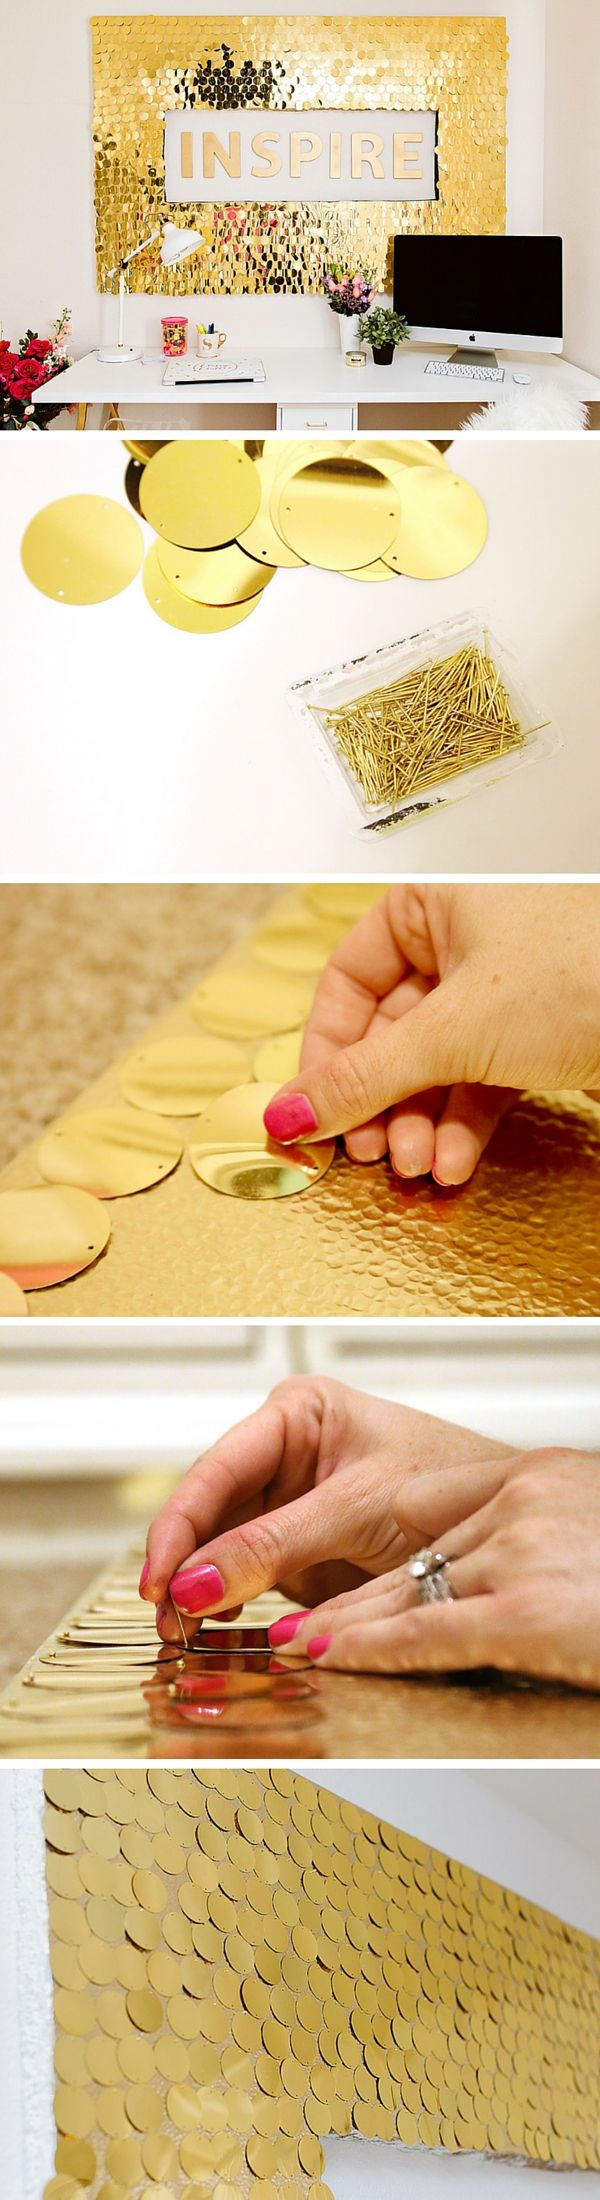 Check-out-the-tutorial-DIY-Sequins-Wall-Art-crafts-decor-wallpaper-wpc5803374